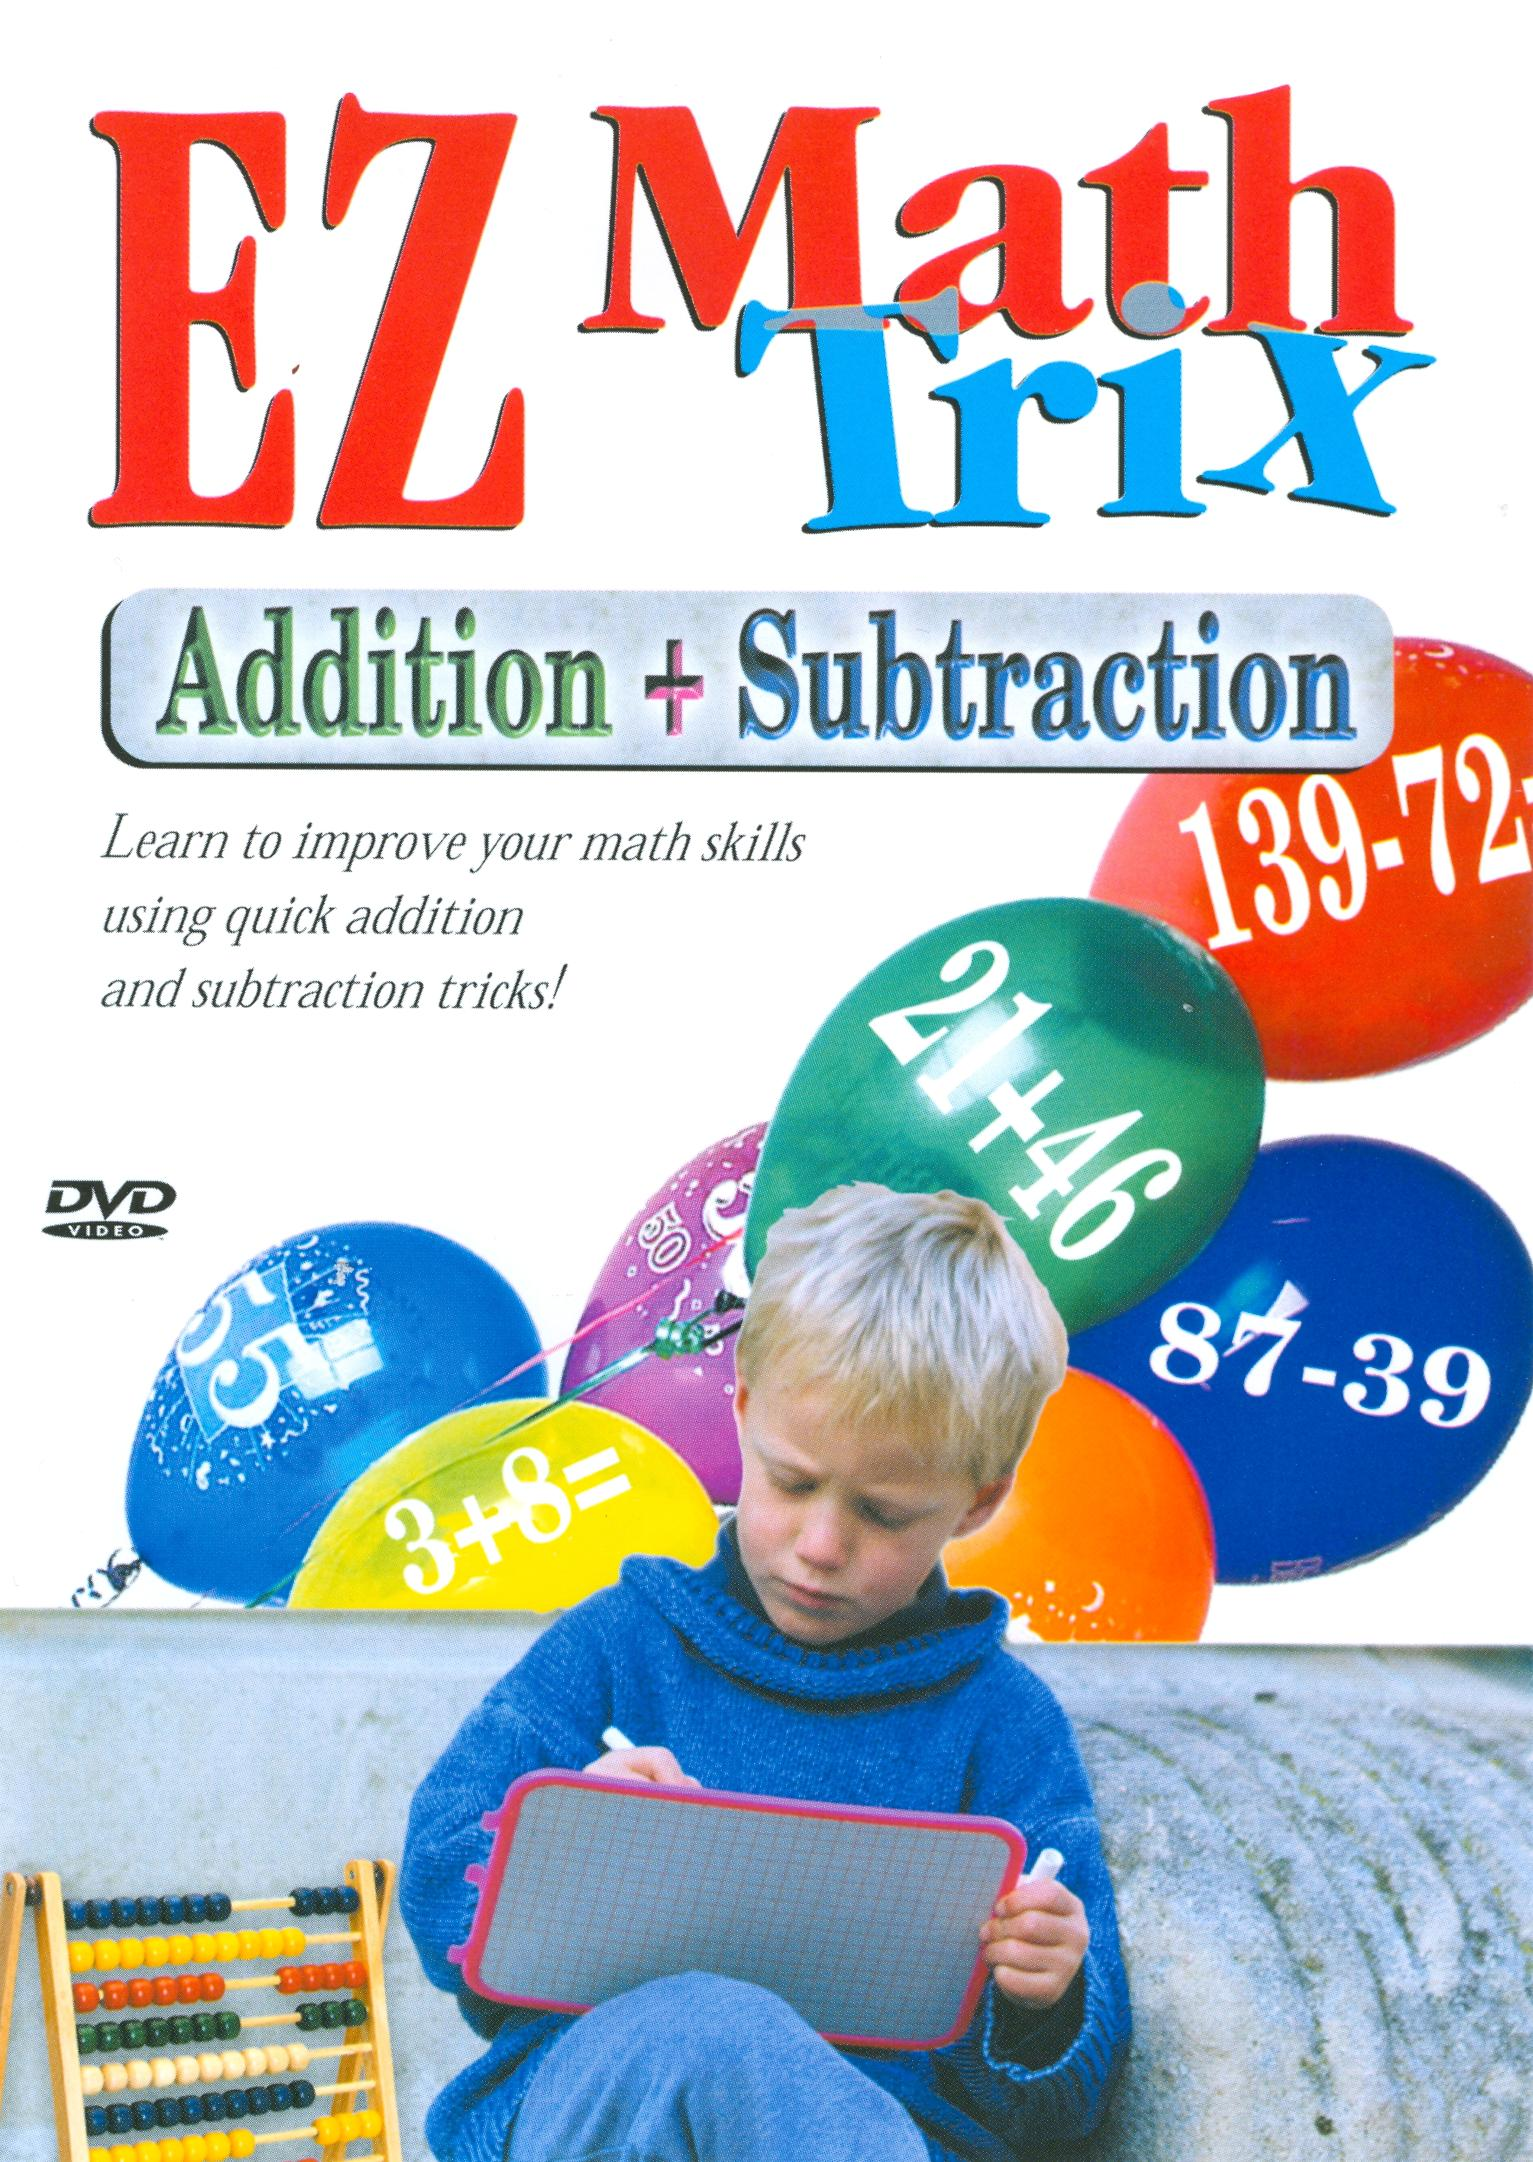 EZ Math Tricks: Addition and Subtraction